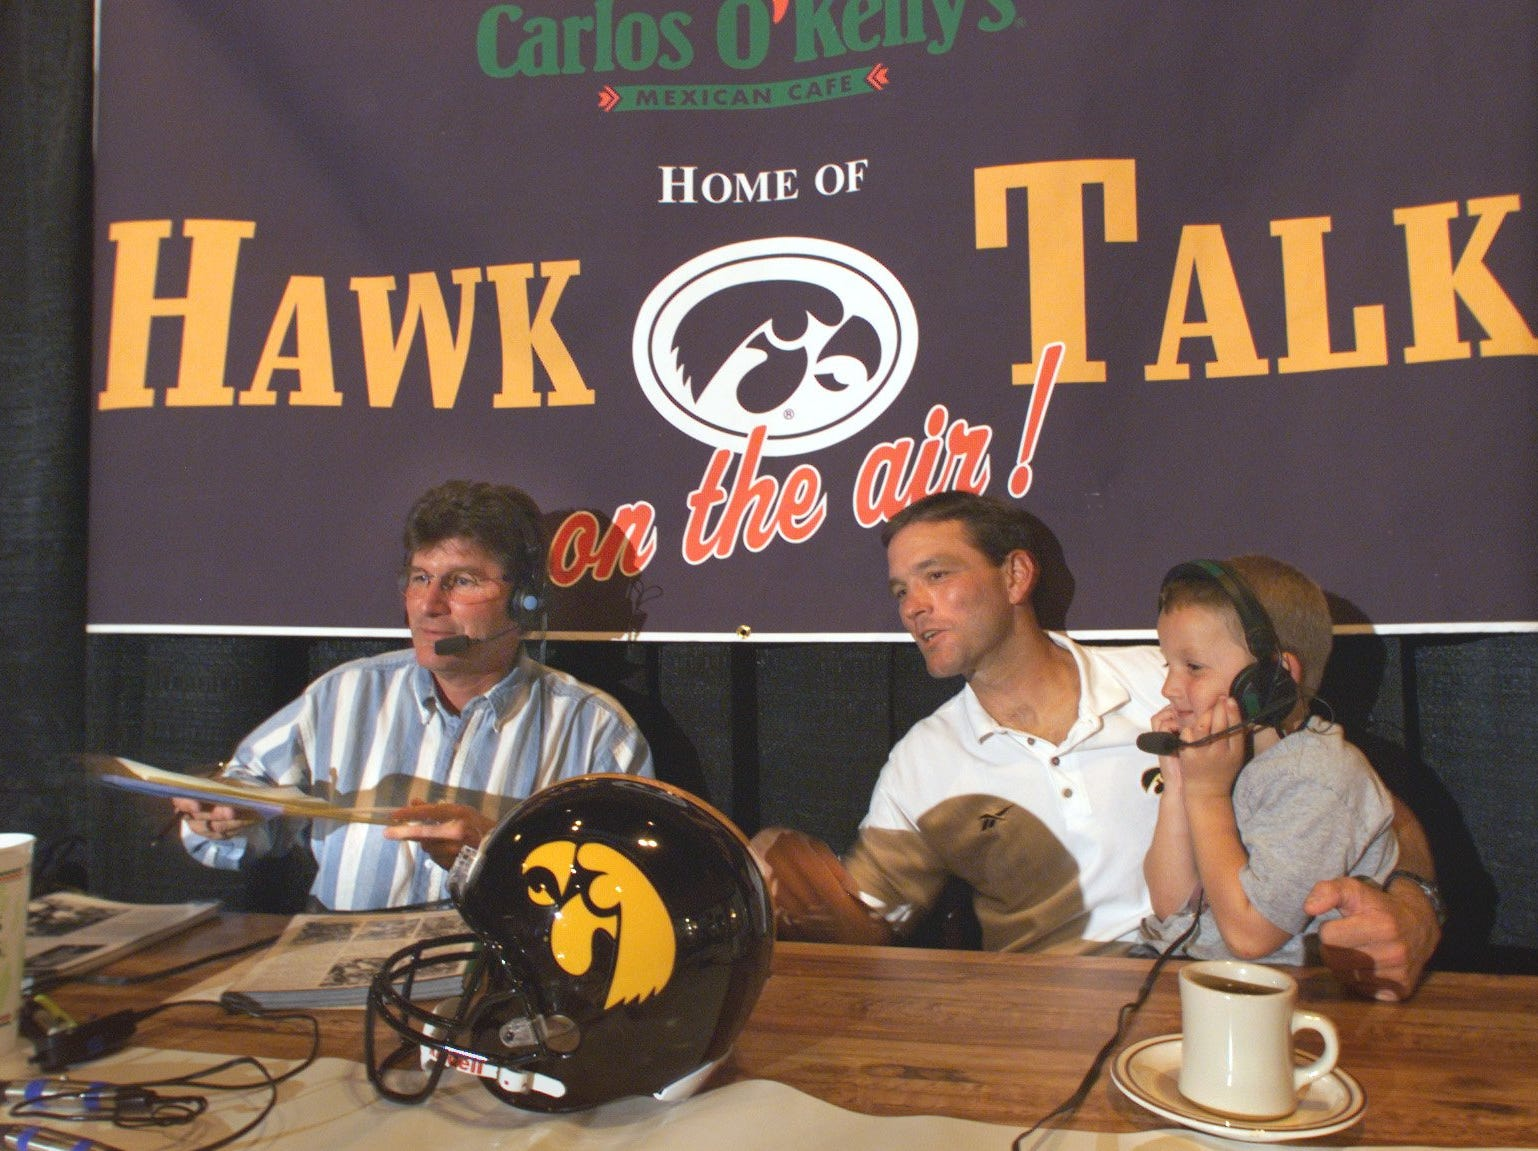 From 1999: Iowa football coach Kirk Ferentz holds his son, Steve, on his lap during the coach's weekly call-in show at Carlos O'Kelly's in Iowa City. At left is Iowa radio broadcaster Gary Dolphin.